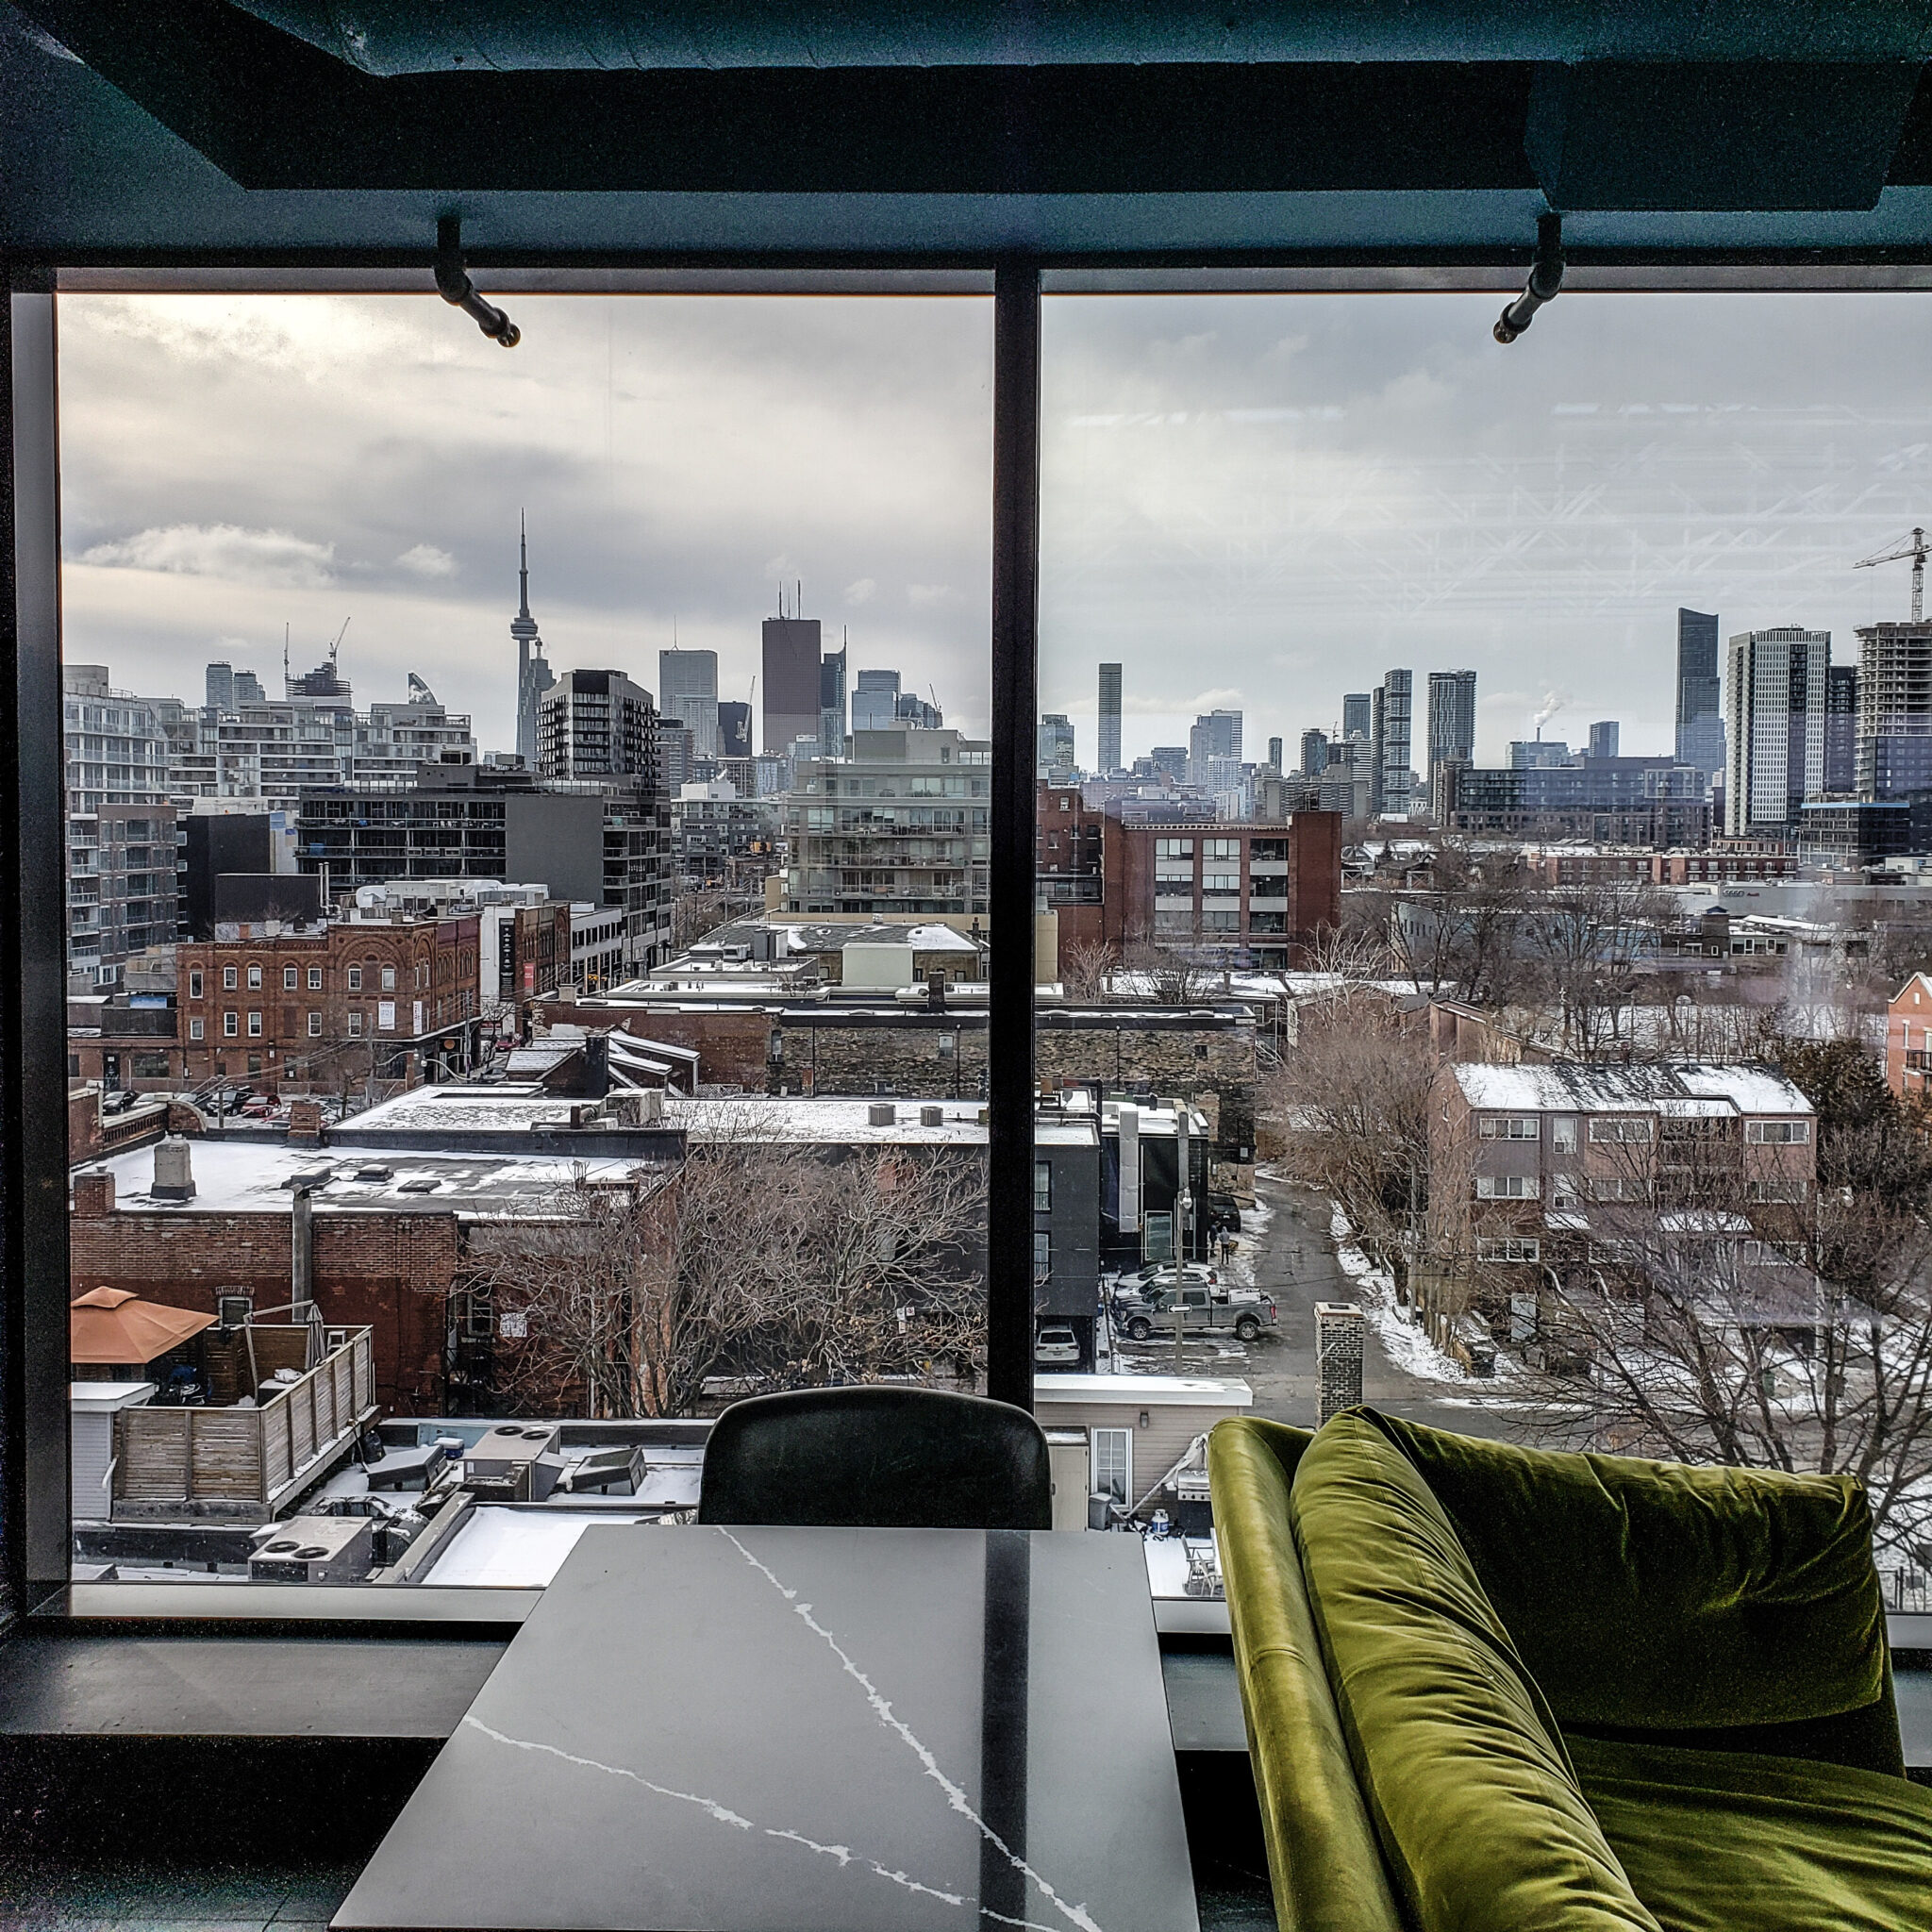 The Broadview Hotel - Broadview Hotel - Queen East - Toronto East - Toronto Life - Boutique Hotel - Rooftop Views